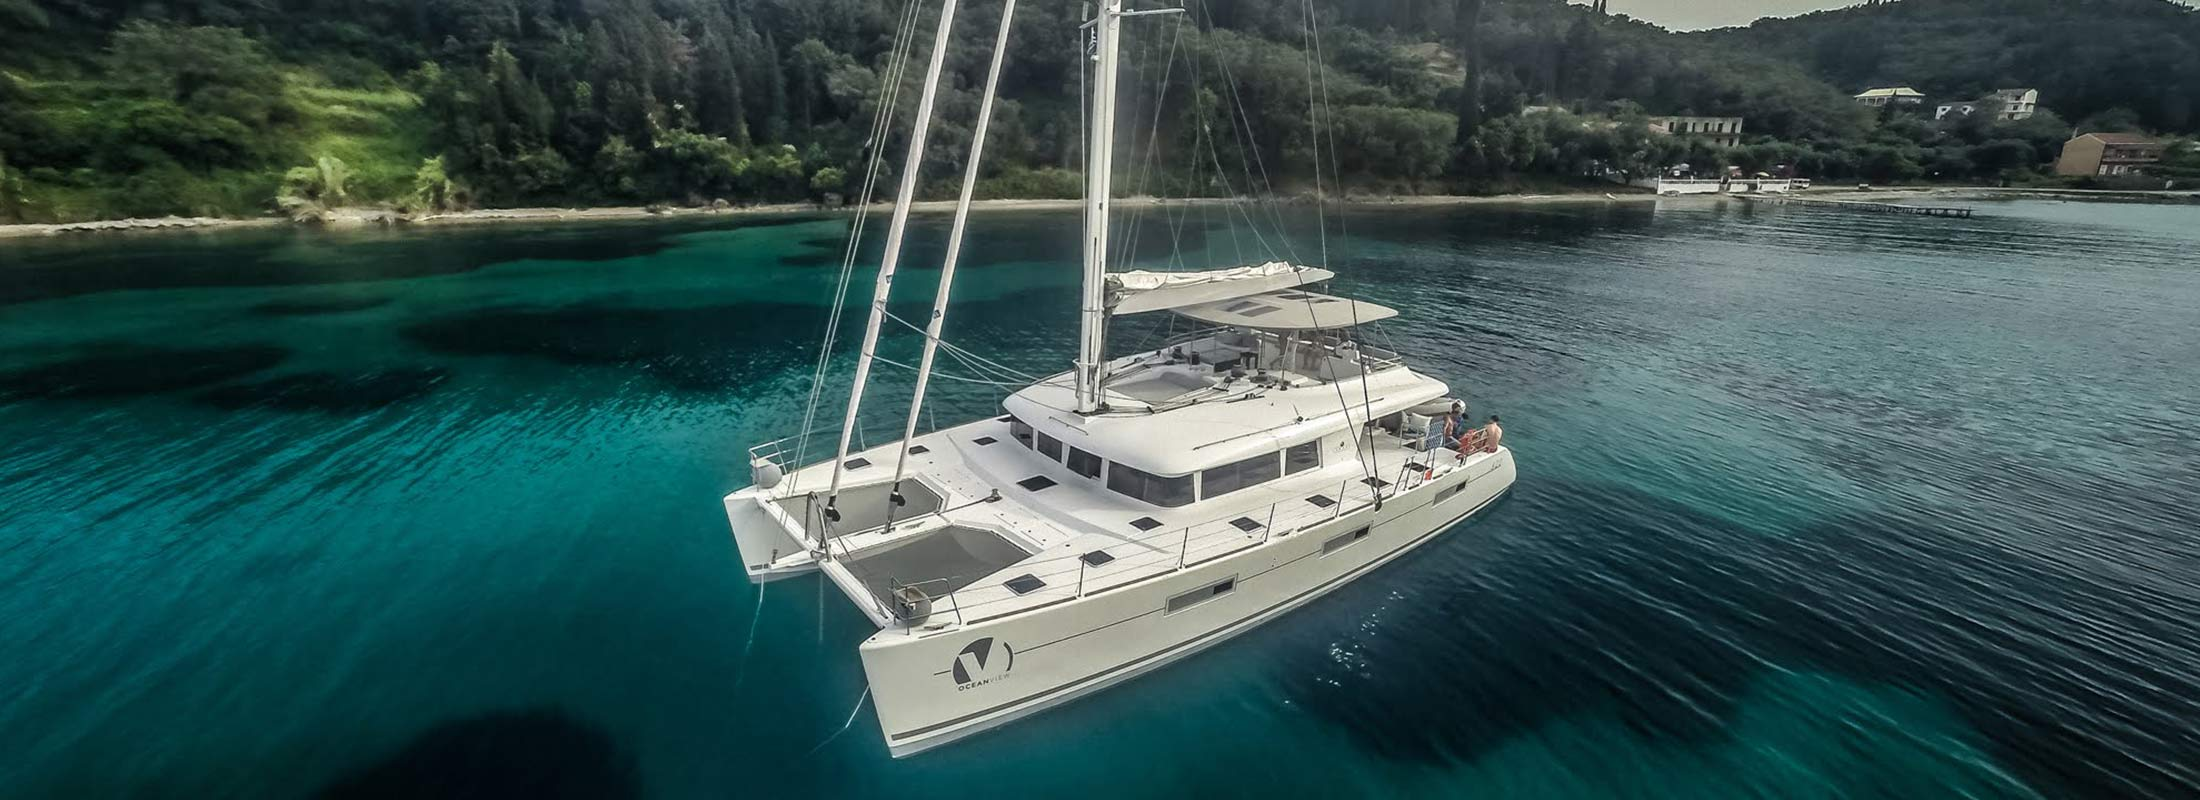 Ocean View Sailing Yacht for Charter Mediterranean Leeward Islands slider 1